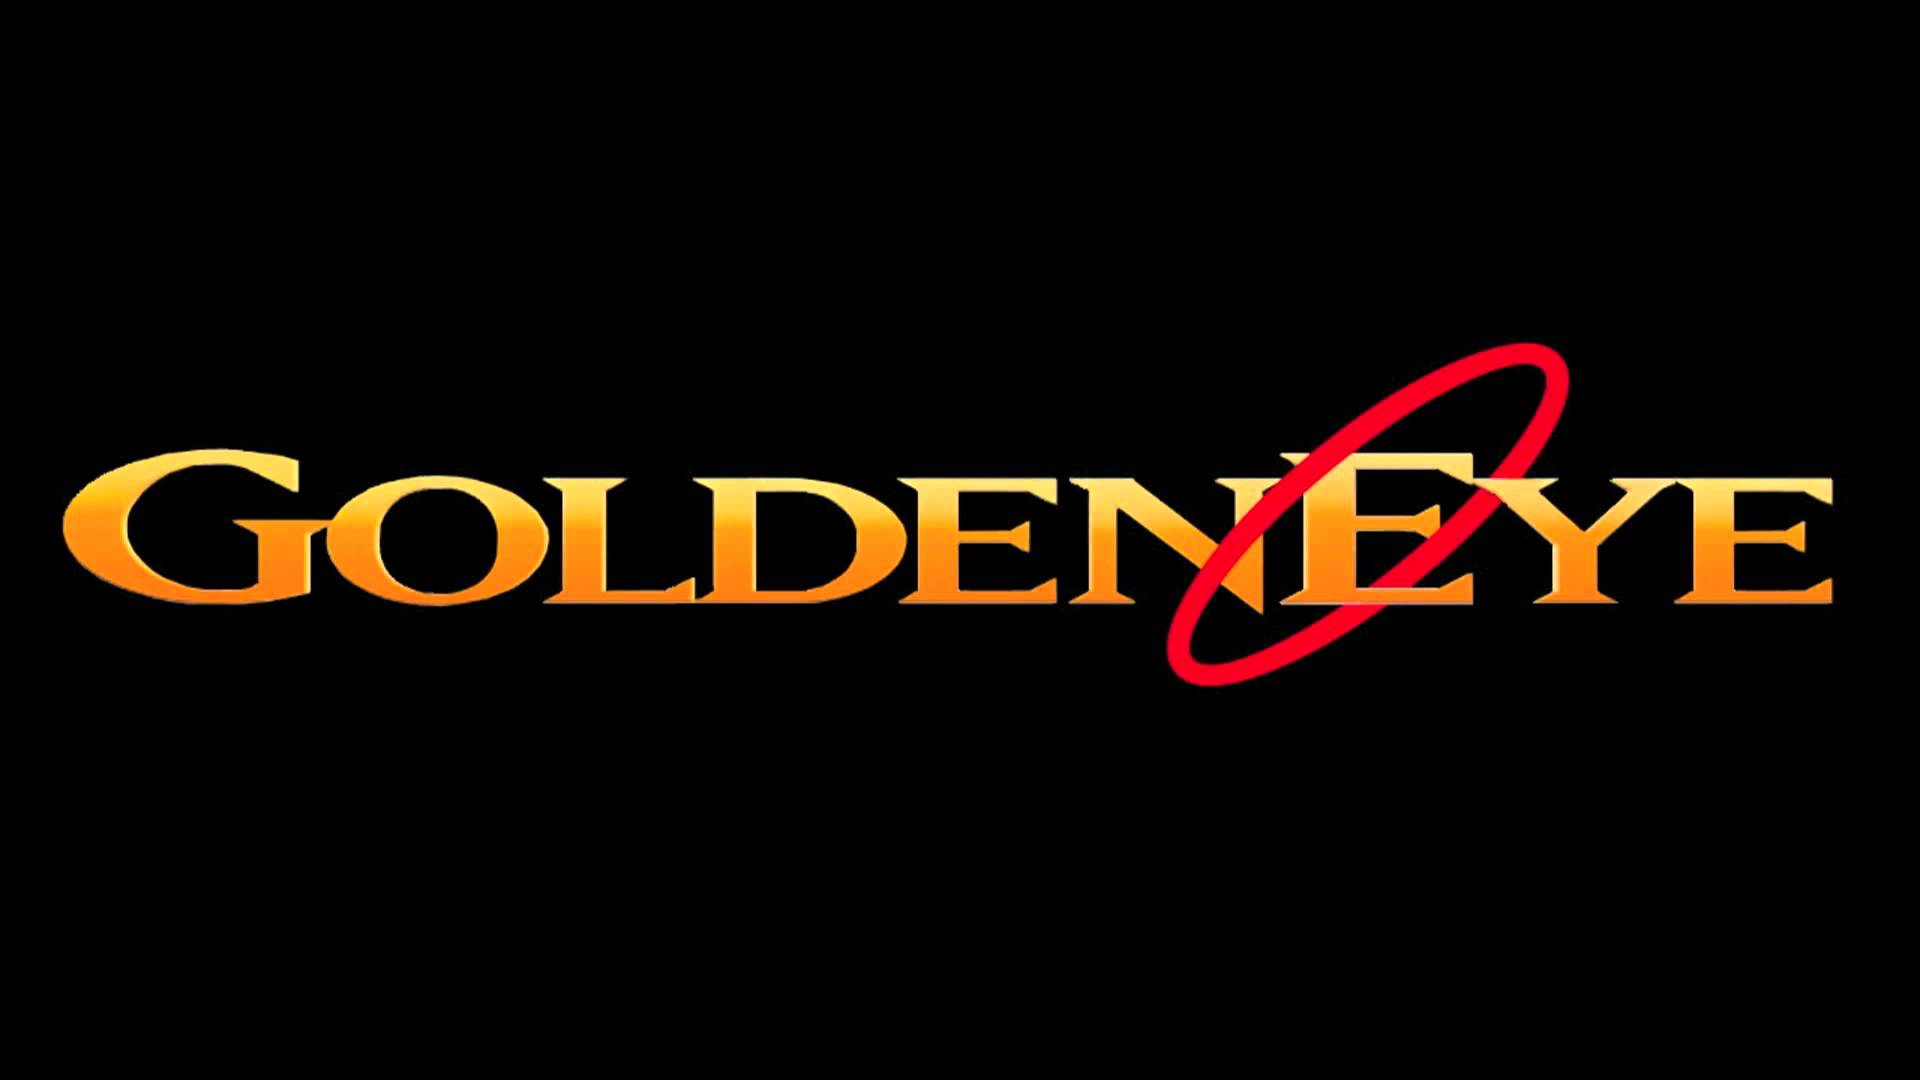 """GoldenEye: Source 5.0"" Releases Today - *cue James Bond music*"